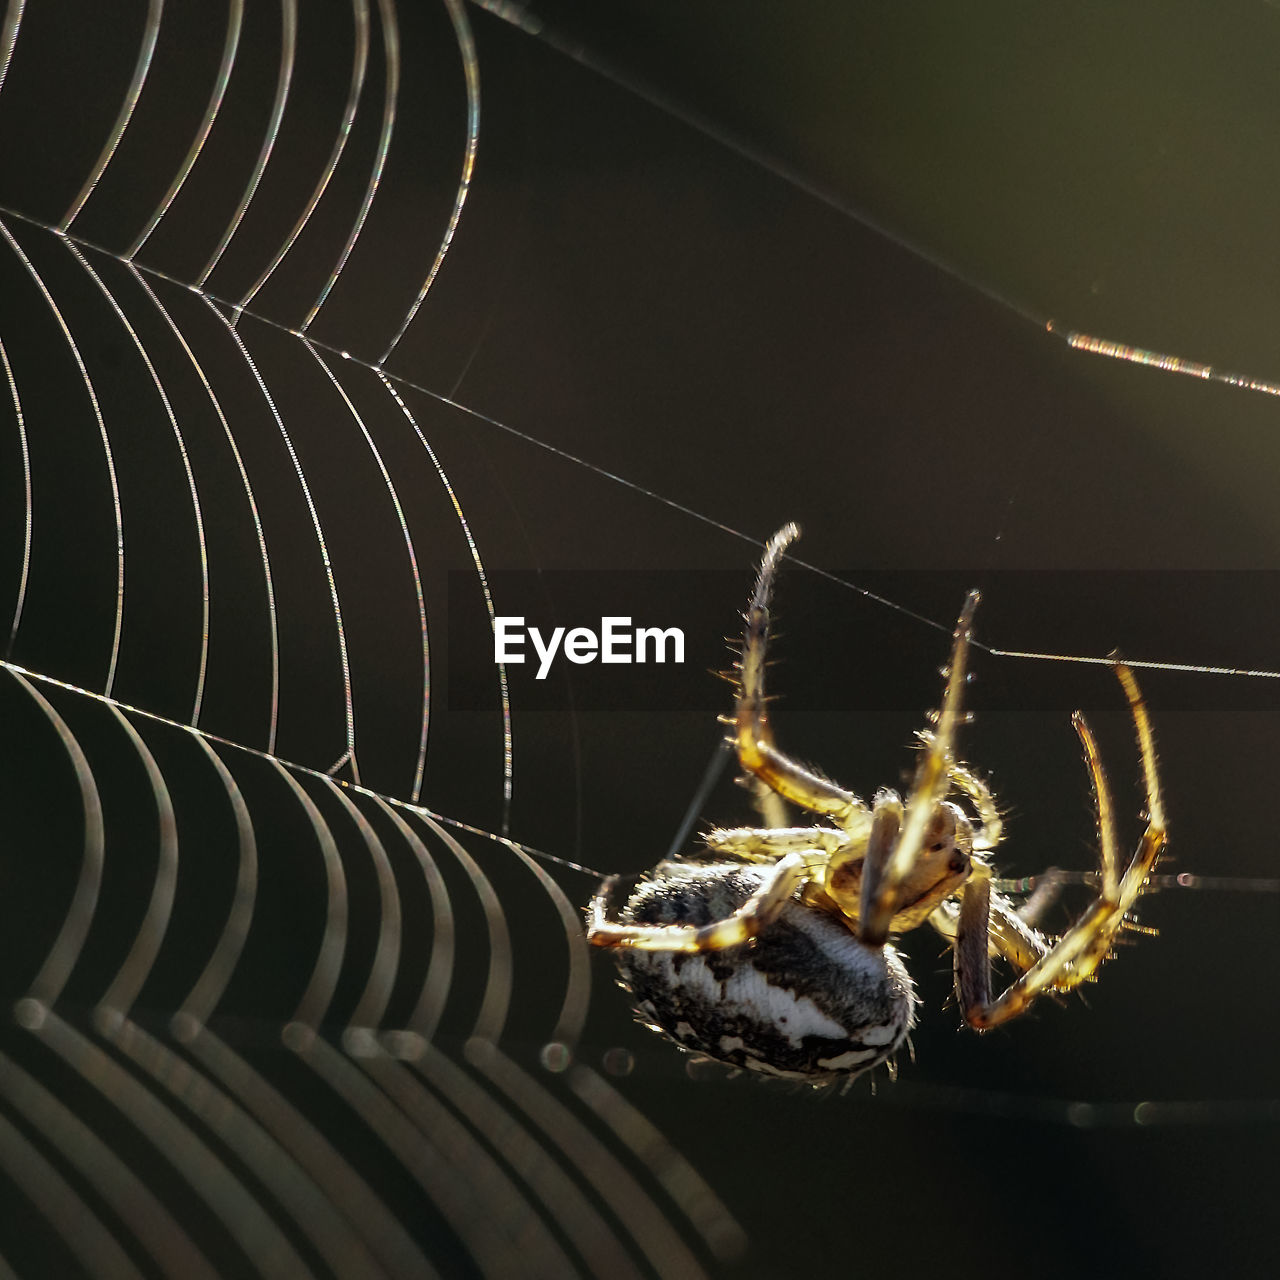 animals in the wild, invertebrate, animal wildlife, insect, close-up, spider web, arachnid, arthropod, spider, animal themes, one animal, animal, fragility, no people, focus on foreground, zoology, nature, outdoors, vulnerability, day, animal leg, black background